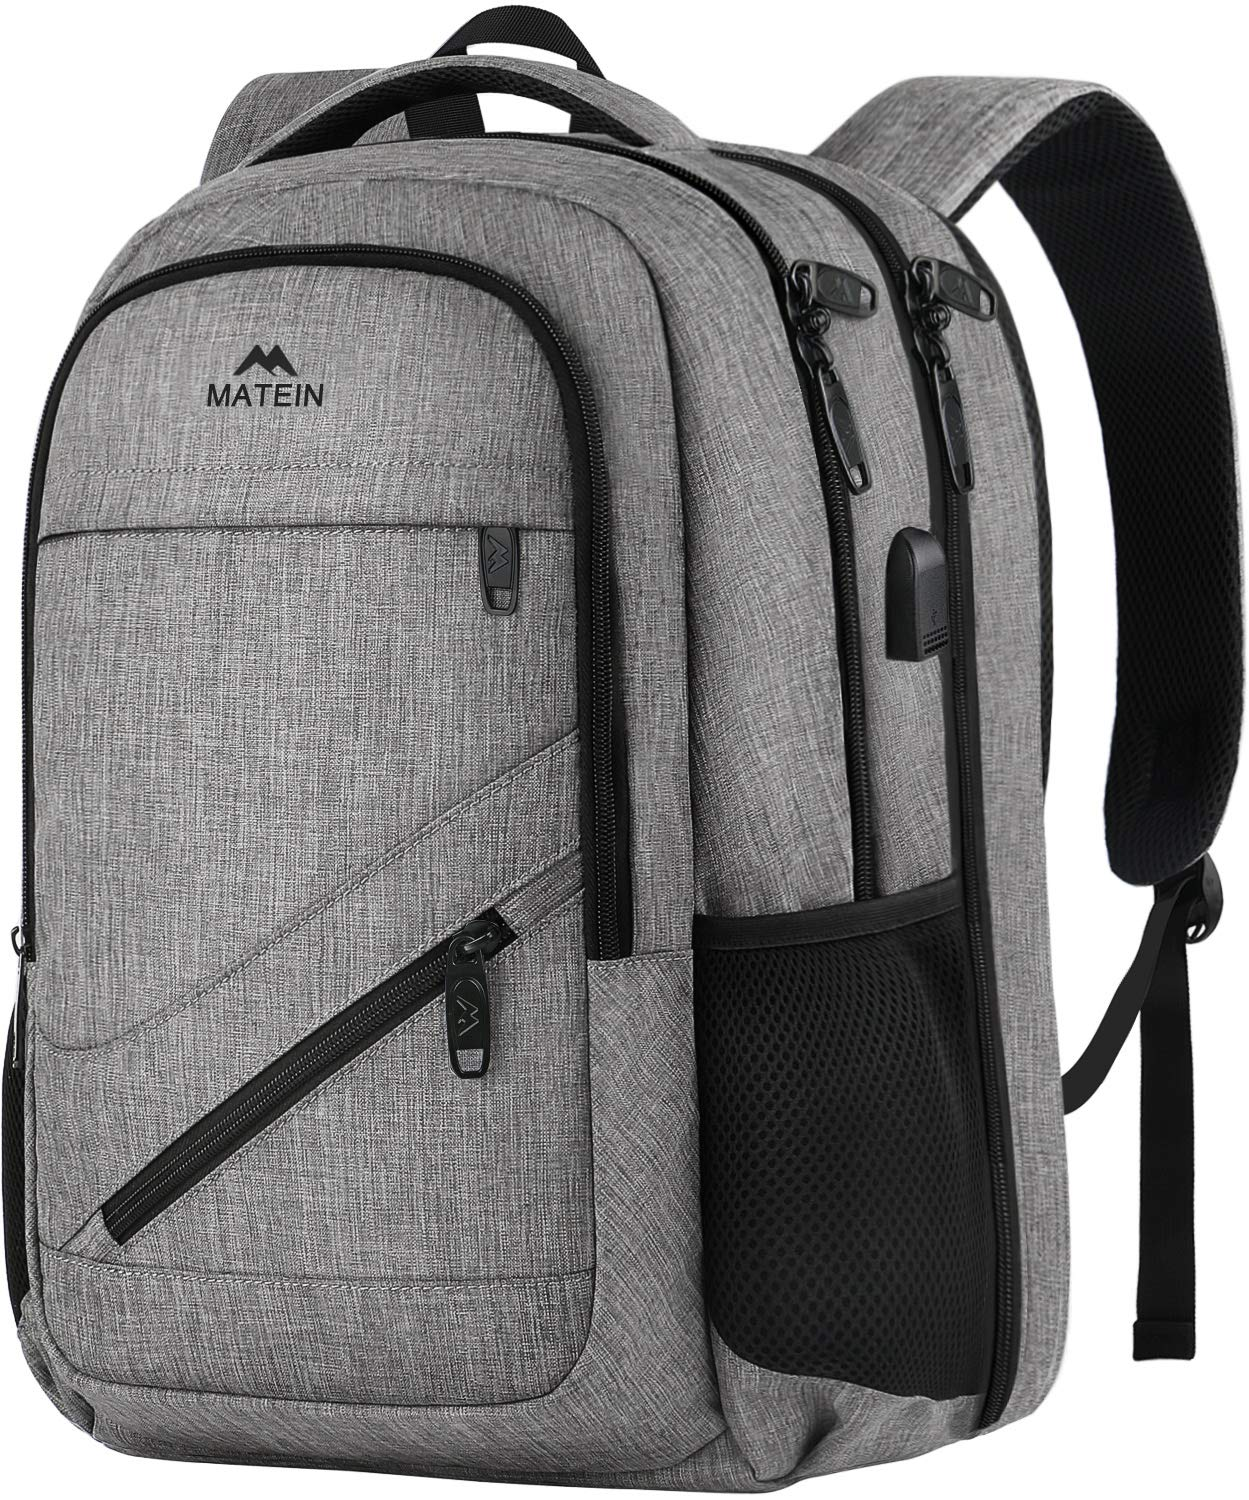 Laptop Backpack 17.3 Inch, TSA Large Travel Backpack for Women Men, MATEIN Water Resistant College School Bookbag, Business Flight Approved Carry On Backpack with USB Charger Port and Luggage Sleeve by MATEIN